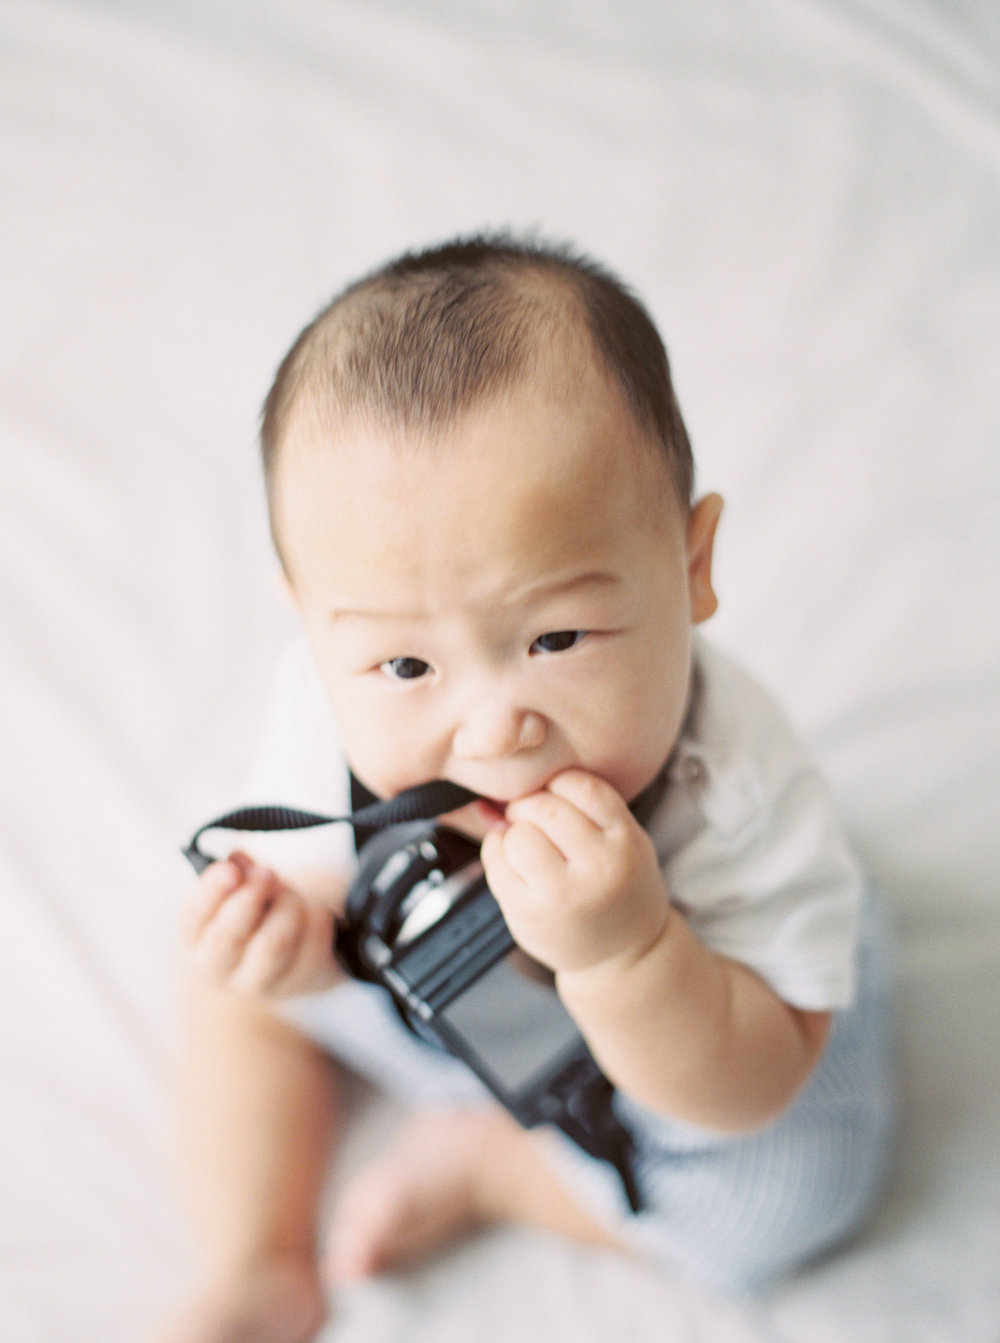 Cody-At Home-Simple-Baby Photography-8 Months Old-Studio June-Film Photography-Jakarta-20.jpg